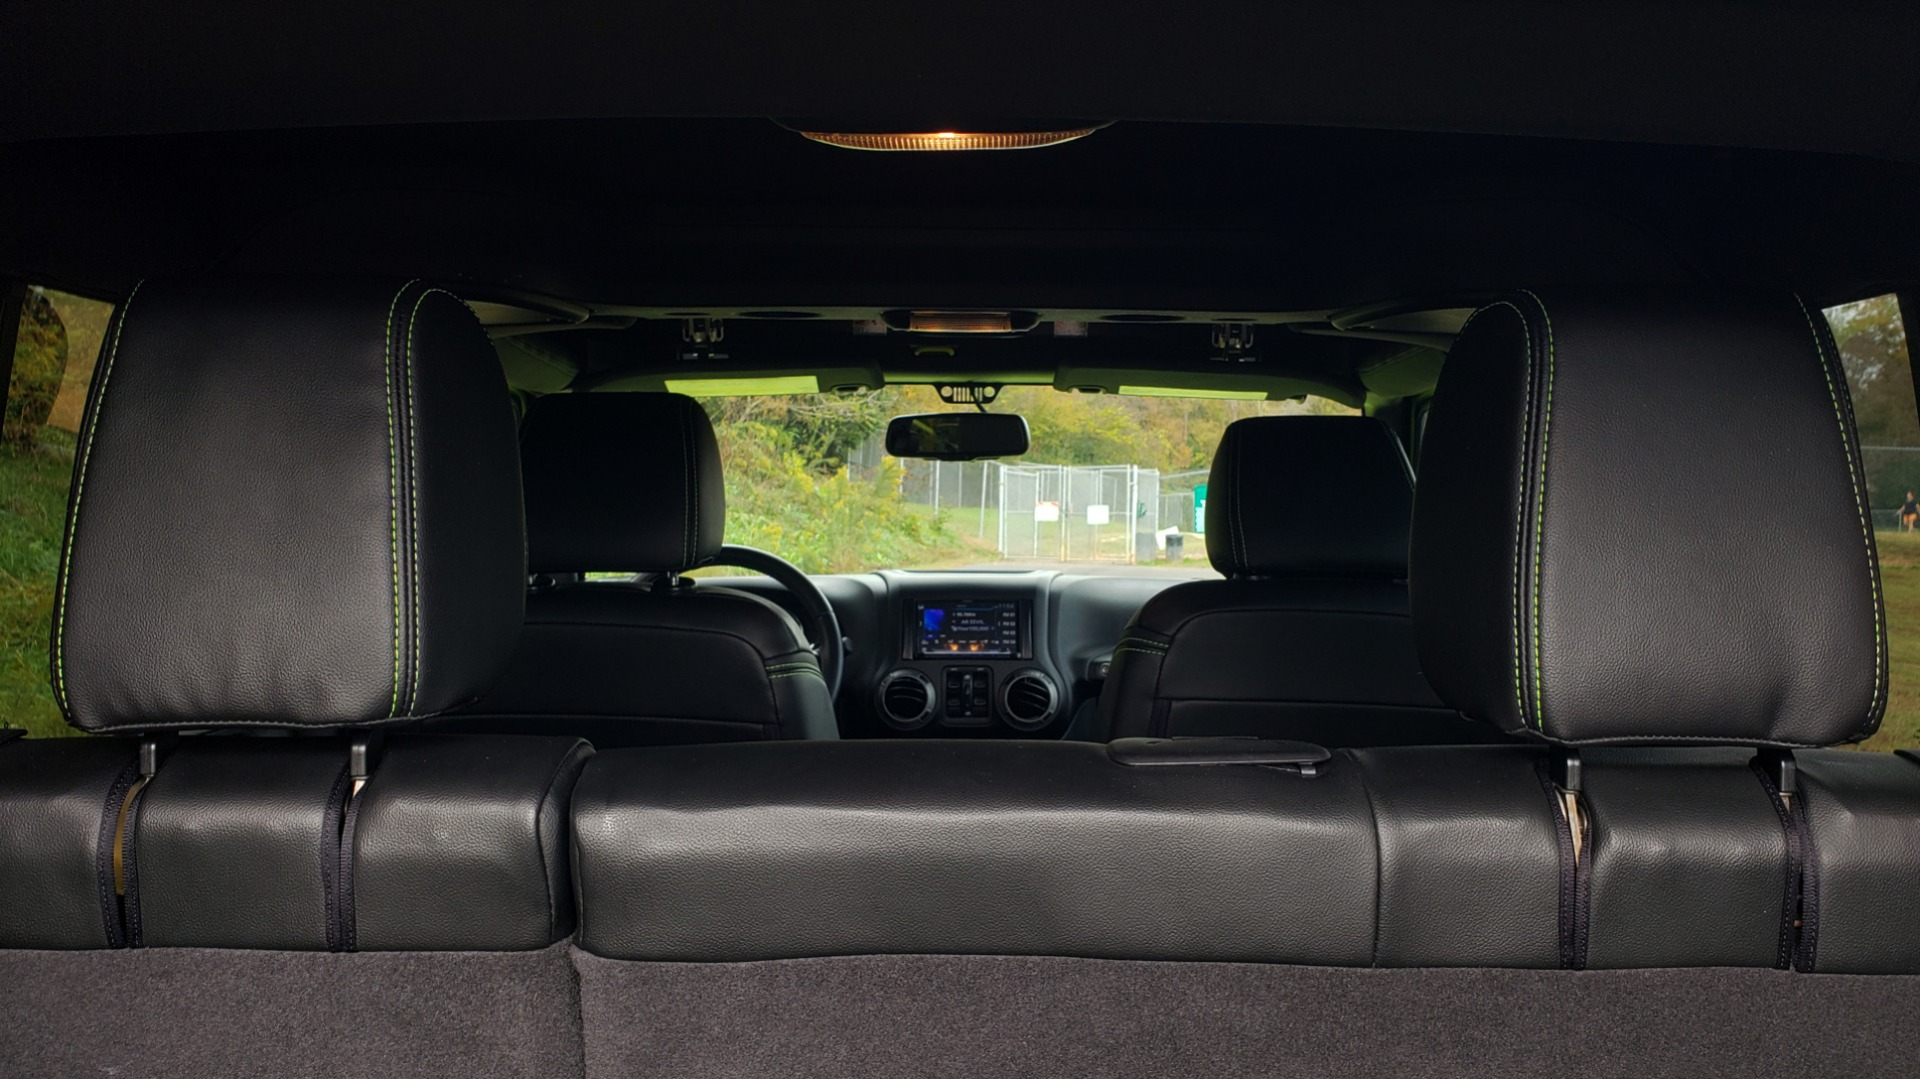 Used 2016 Jeep WRANGLER UNLIMITED SPORT 4X4 / POWER TOP / NAV / HTD STS / REARVIEW for sale $36,999 at Formula Imports in Charlotte NC 28227 39